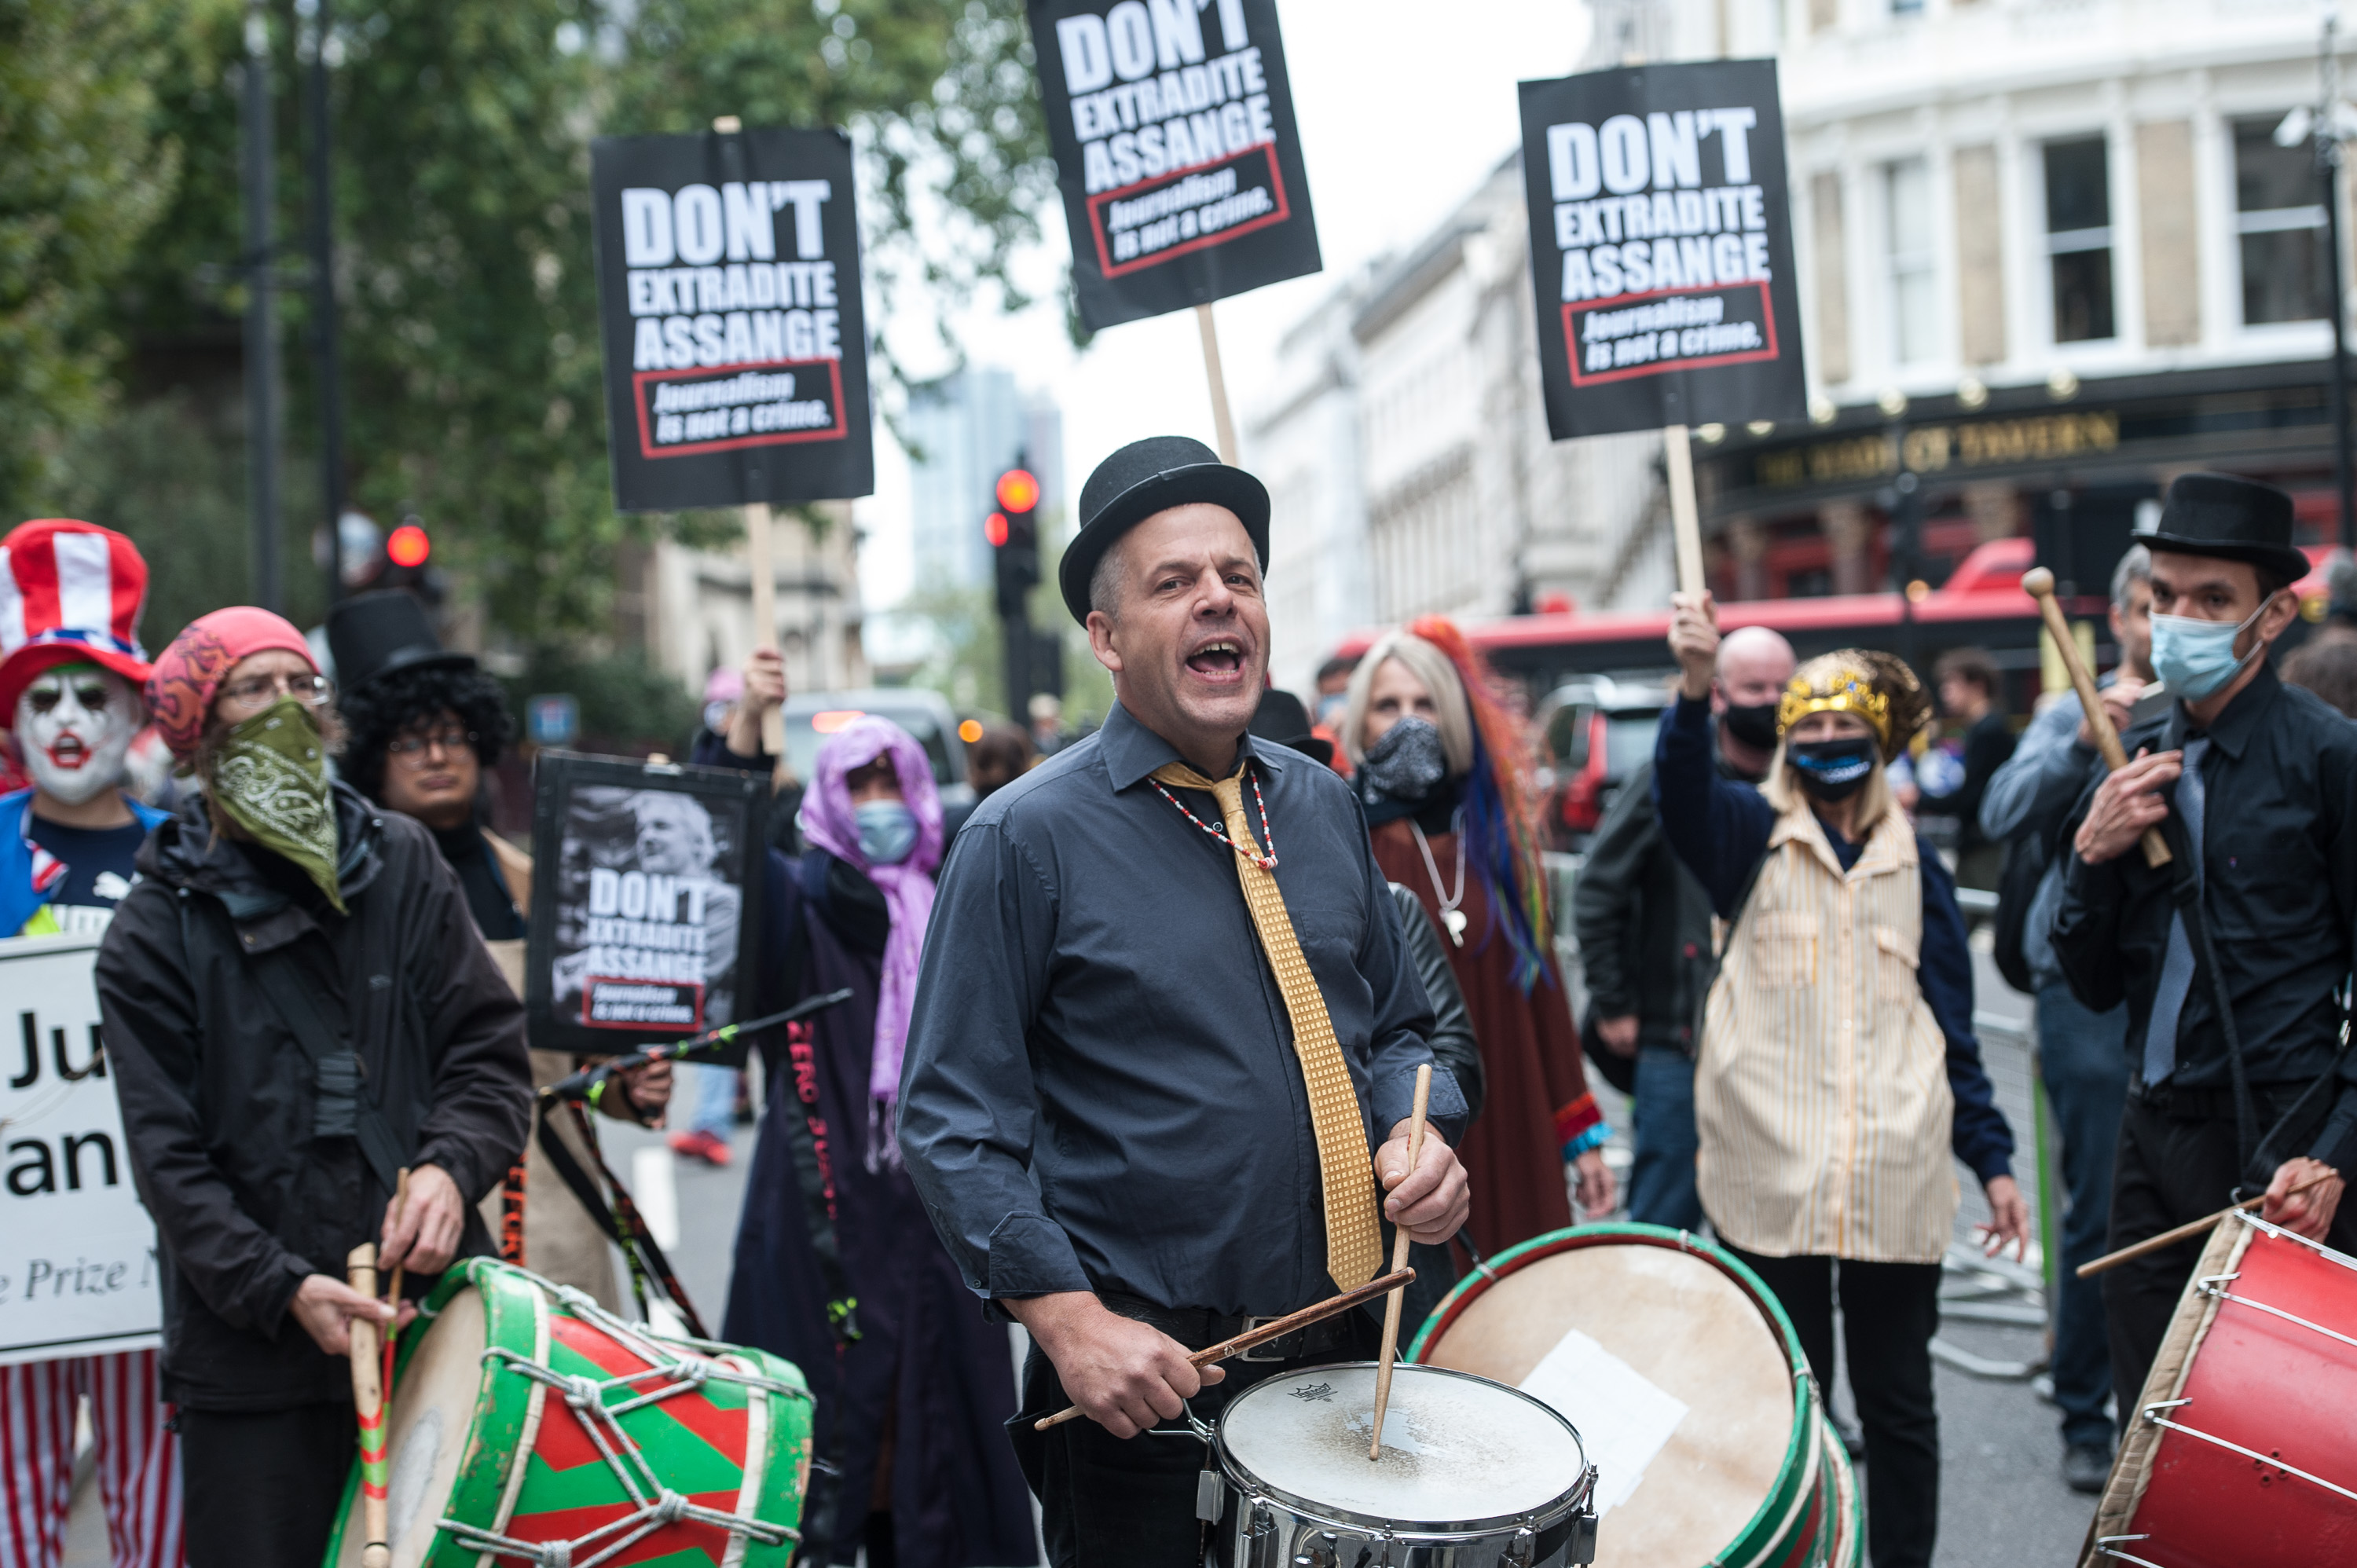 protest_photos:drum4j-old-bailey-7spet20.jpg